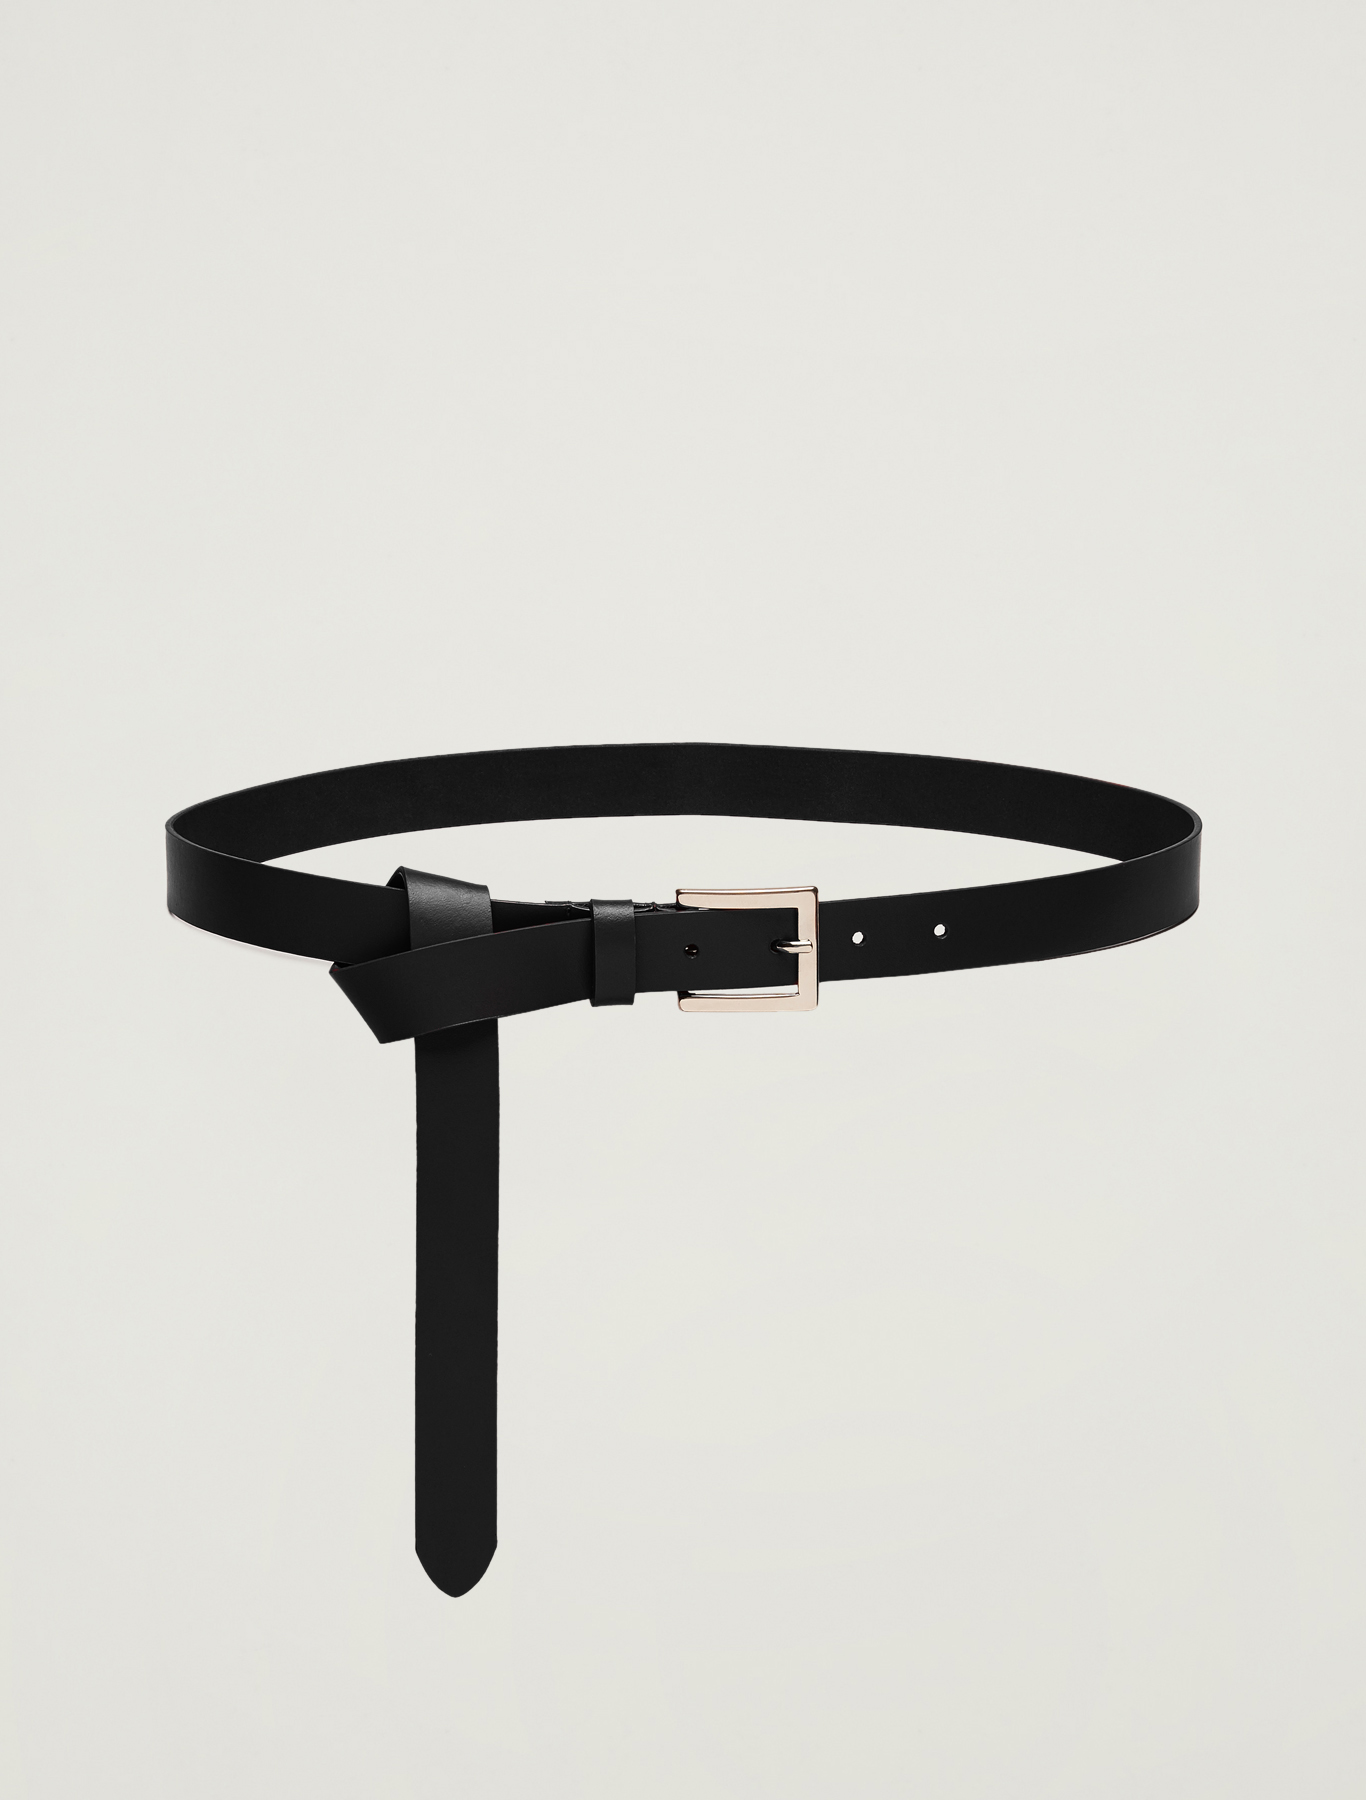 Leather belt - black - pennyblack